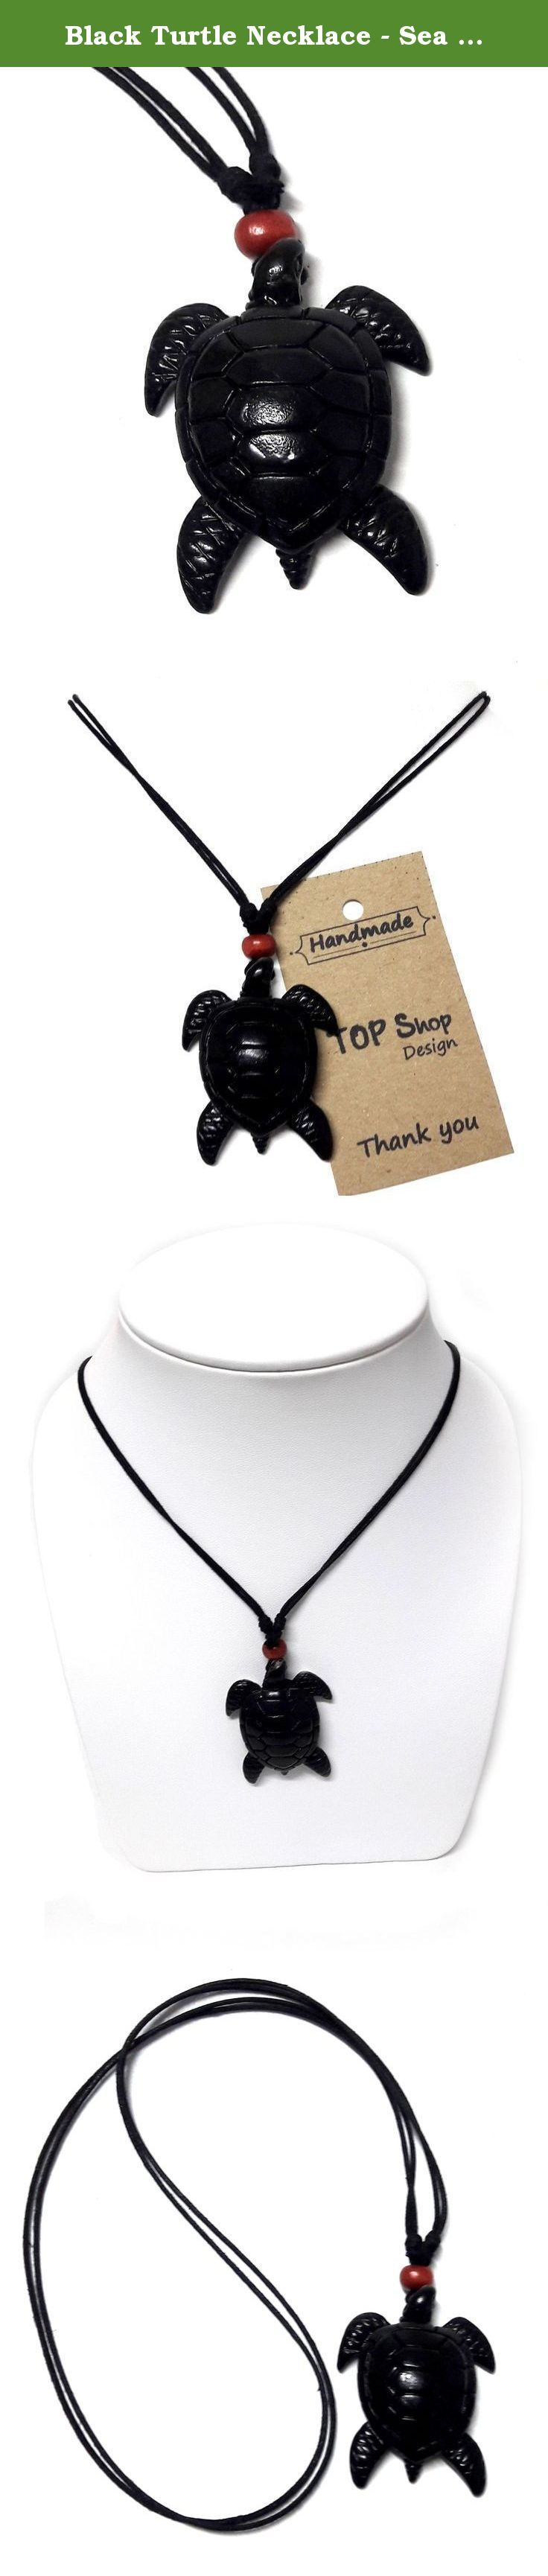 Black Turtle Necklace - Sea Turtle Necklace - Hawaiian Turtle Necklace - Beach Turtle Carey. The meaning of the turtle mascot According to its culture and heritage to the present. Stuffed Animals It is another meaning. It will also lead to a windfall. Prosperity to the people and dwelling houses as well. Tao Tao is too significant to health. Long life spans Strength endurance Commitment to the advancement and enhancement of wealth. Tao is a sacred animal in connection with the gods and...